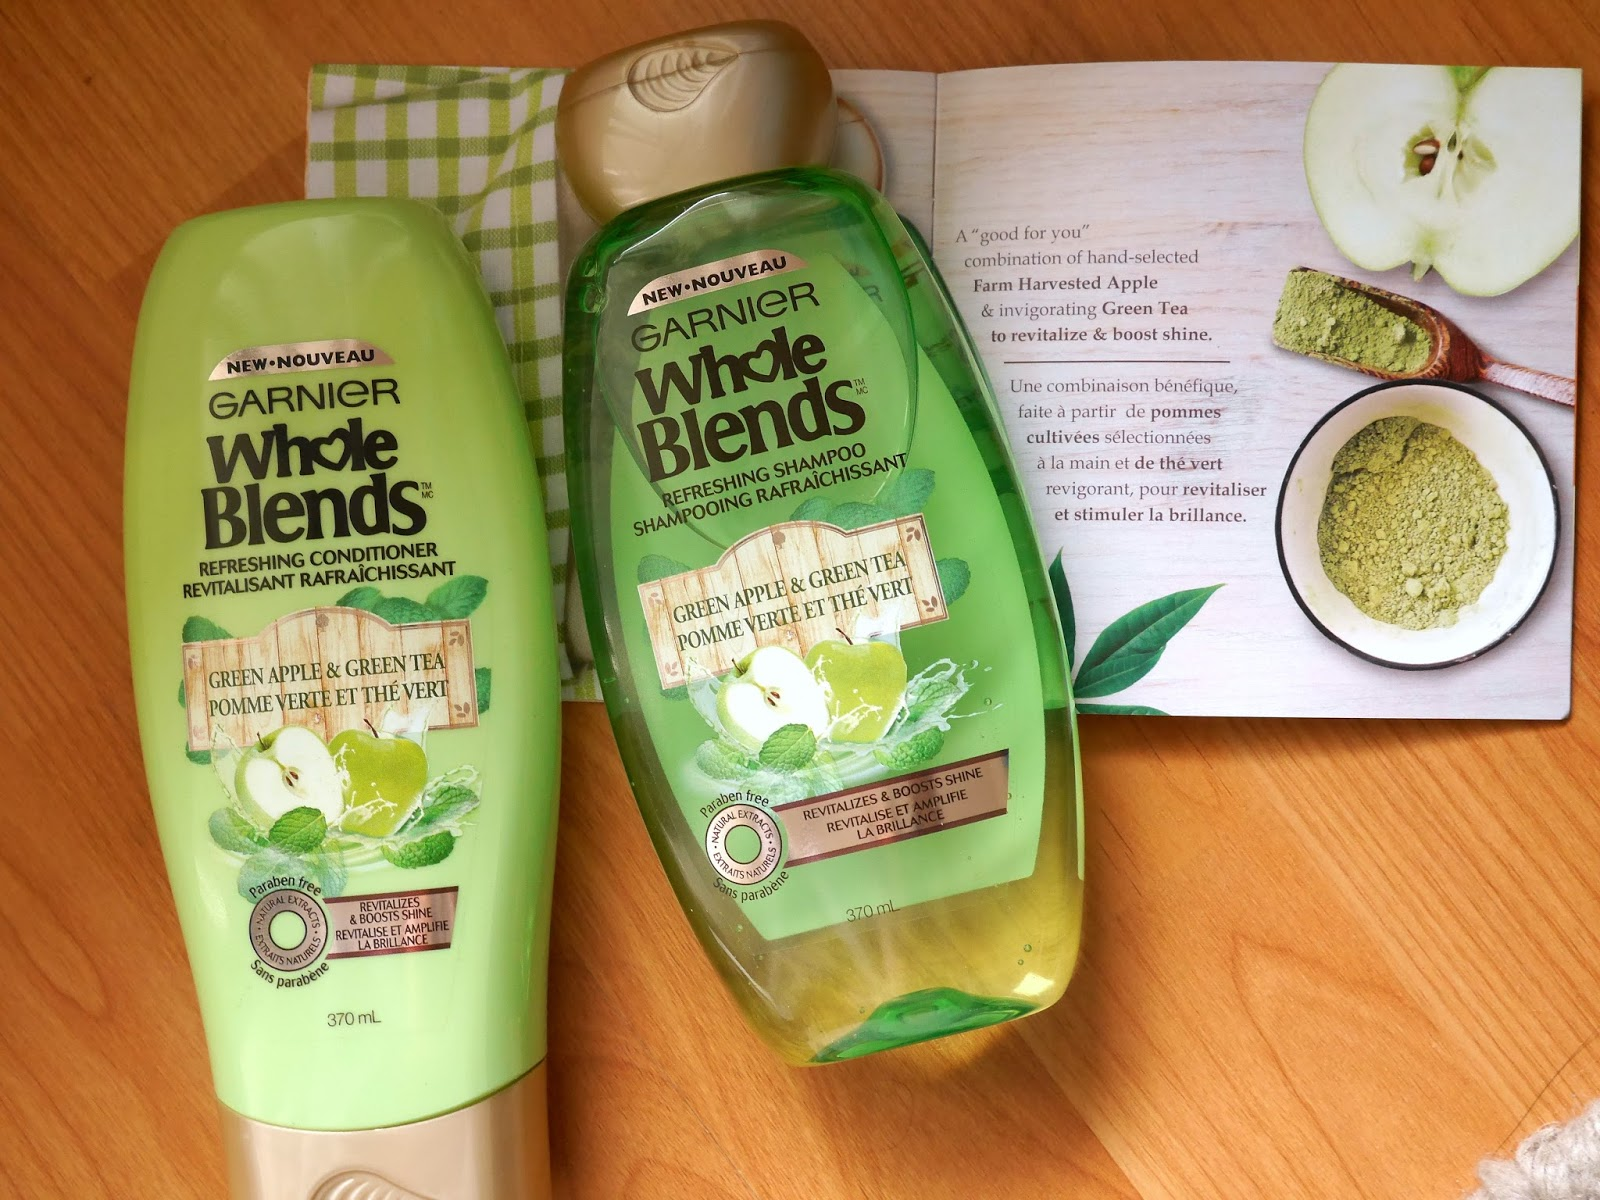 Garnier Whole Blend Green Apple and Green Tea